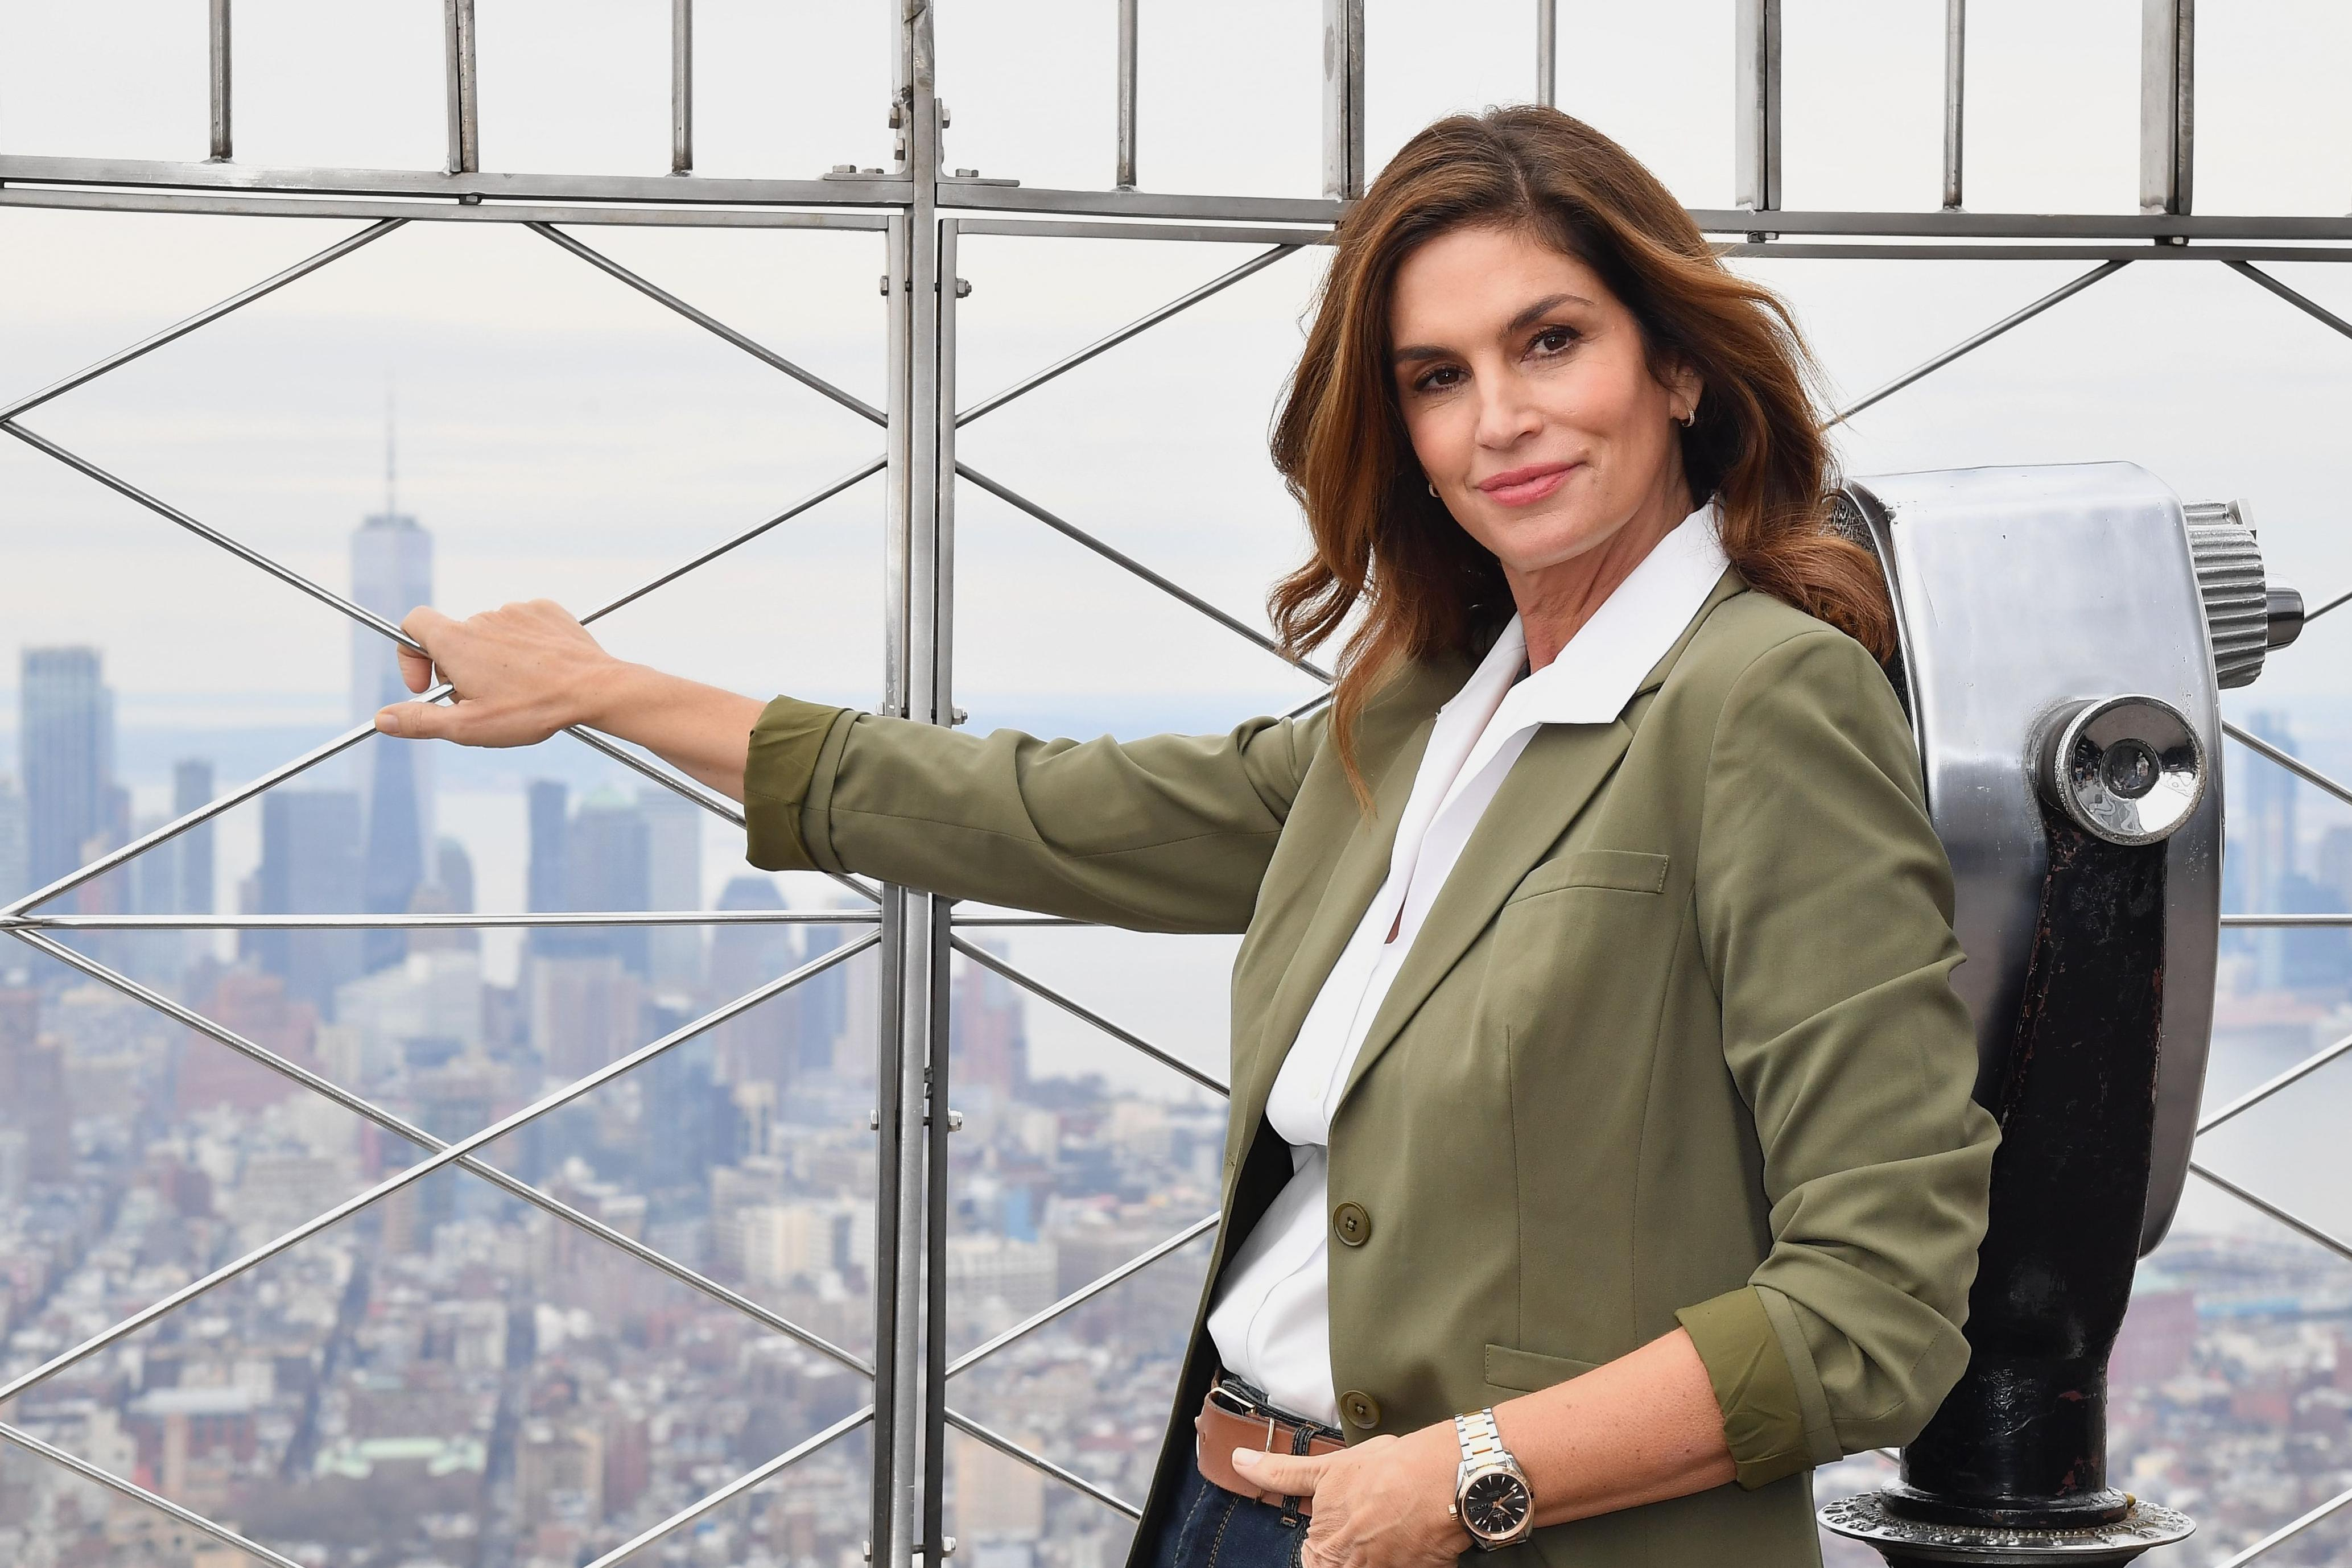 Cindy Crawford's Road To Success